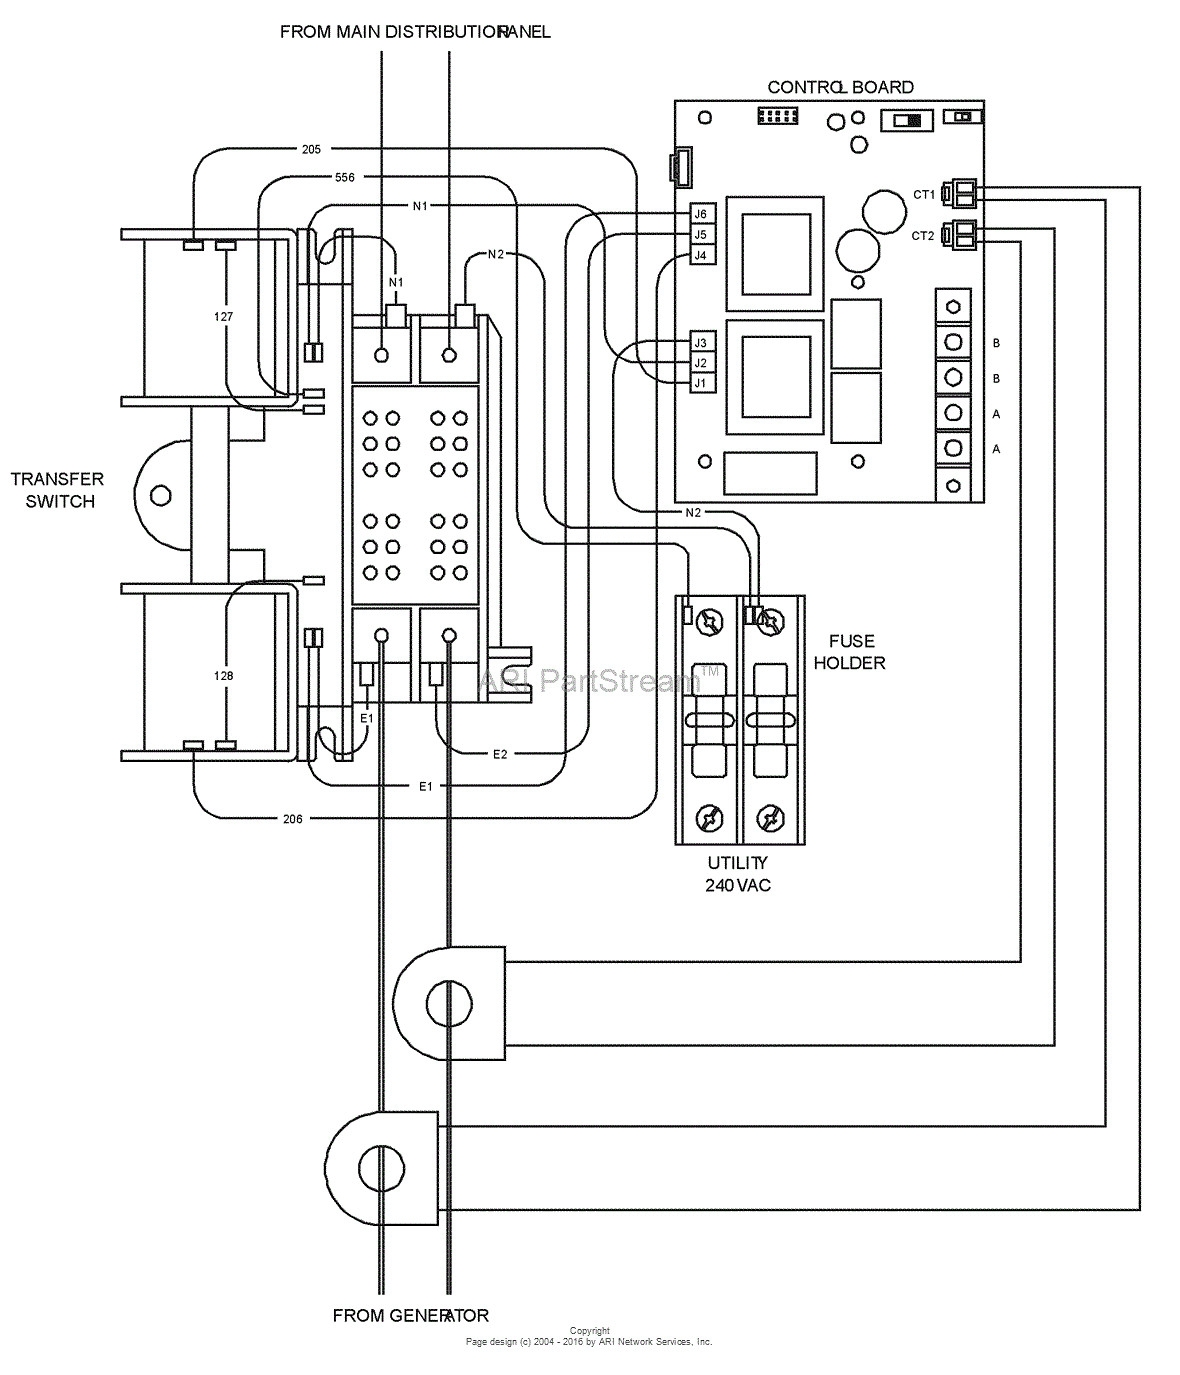 Gentran Transfer Switch Wiring Diagram Briggs And Stratton Power Products Watt Standby Tearing Transfer Switch Wiring M on Generac Generator Wiring Diagram Electrical